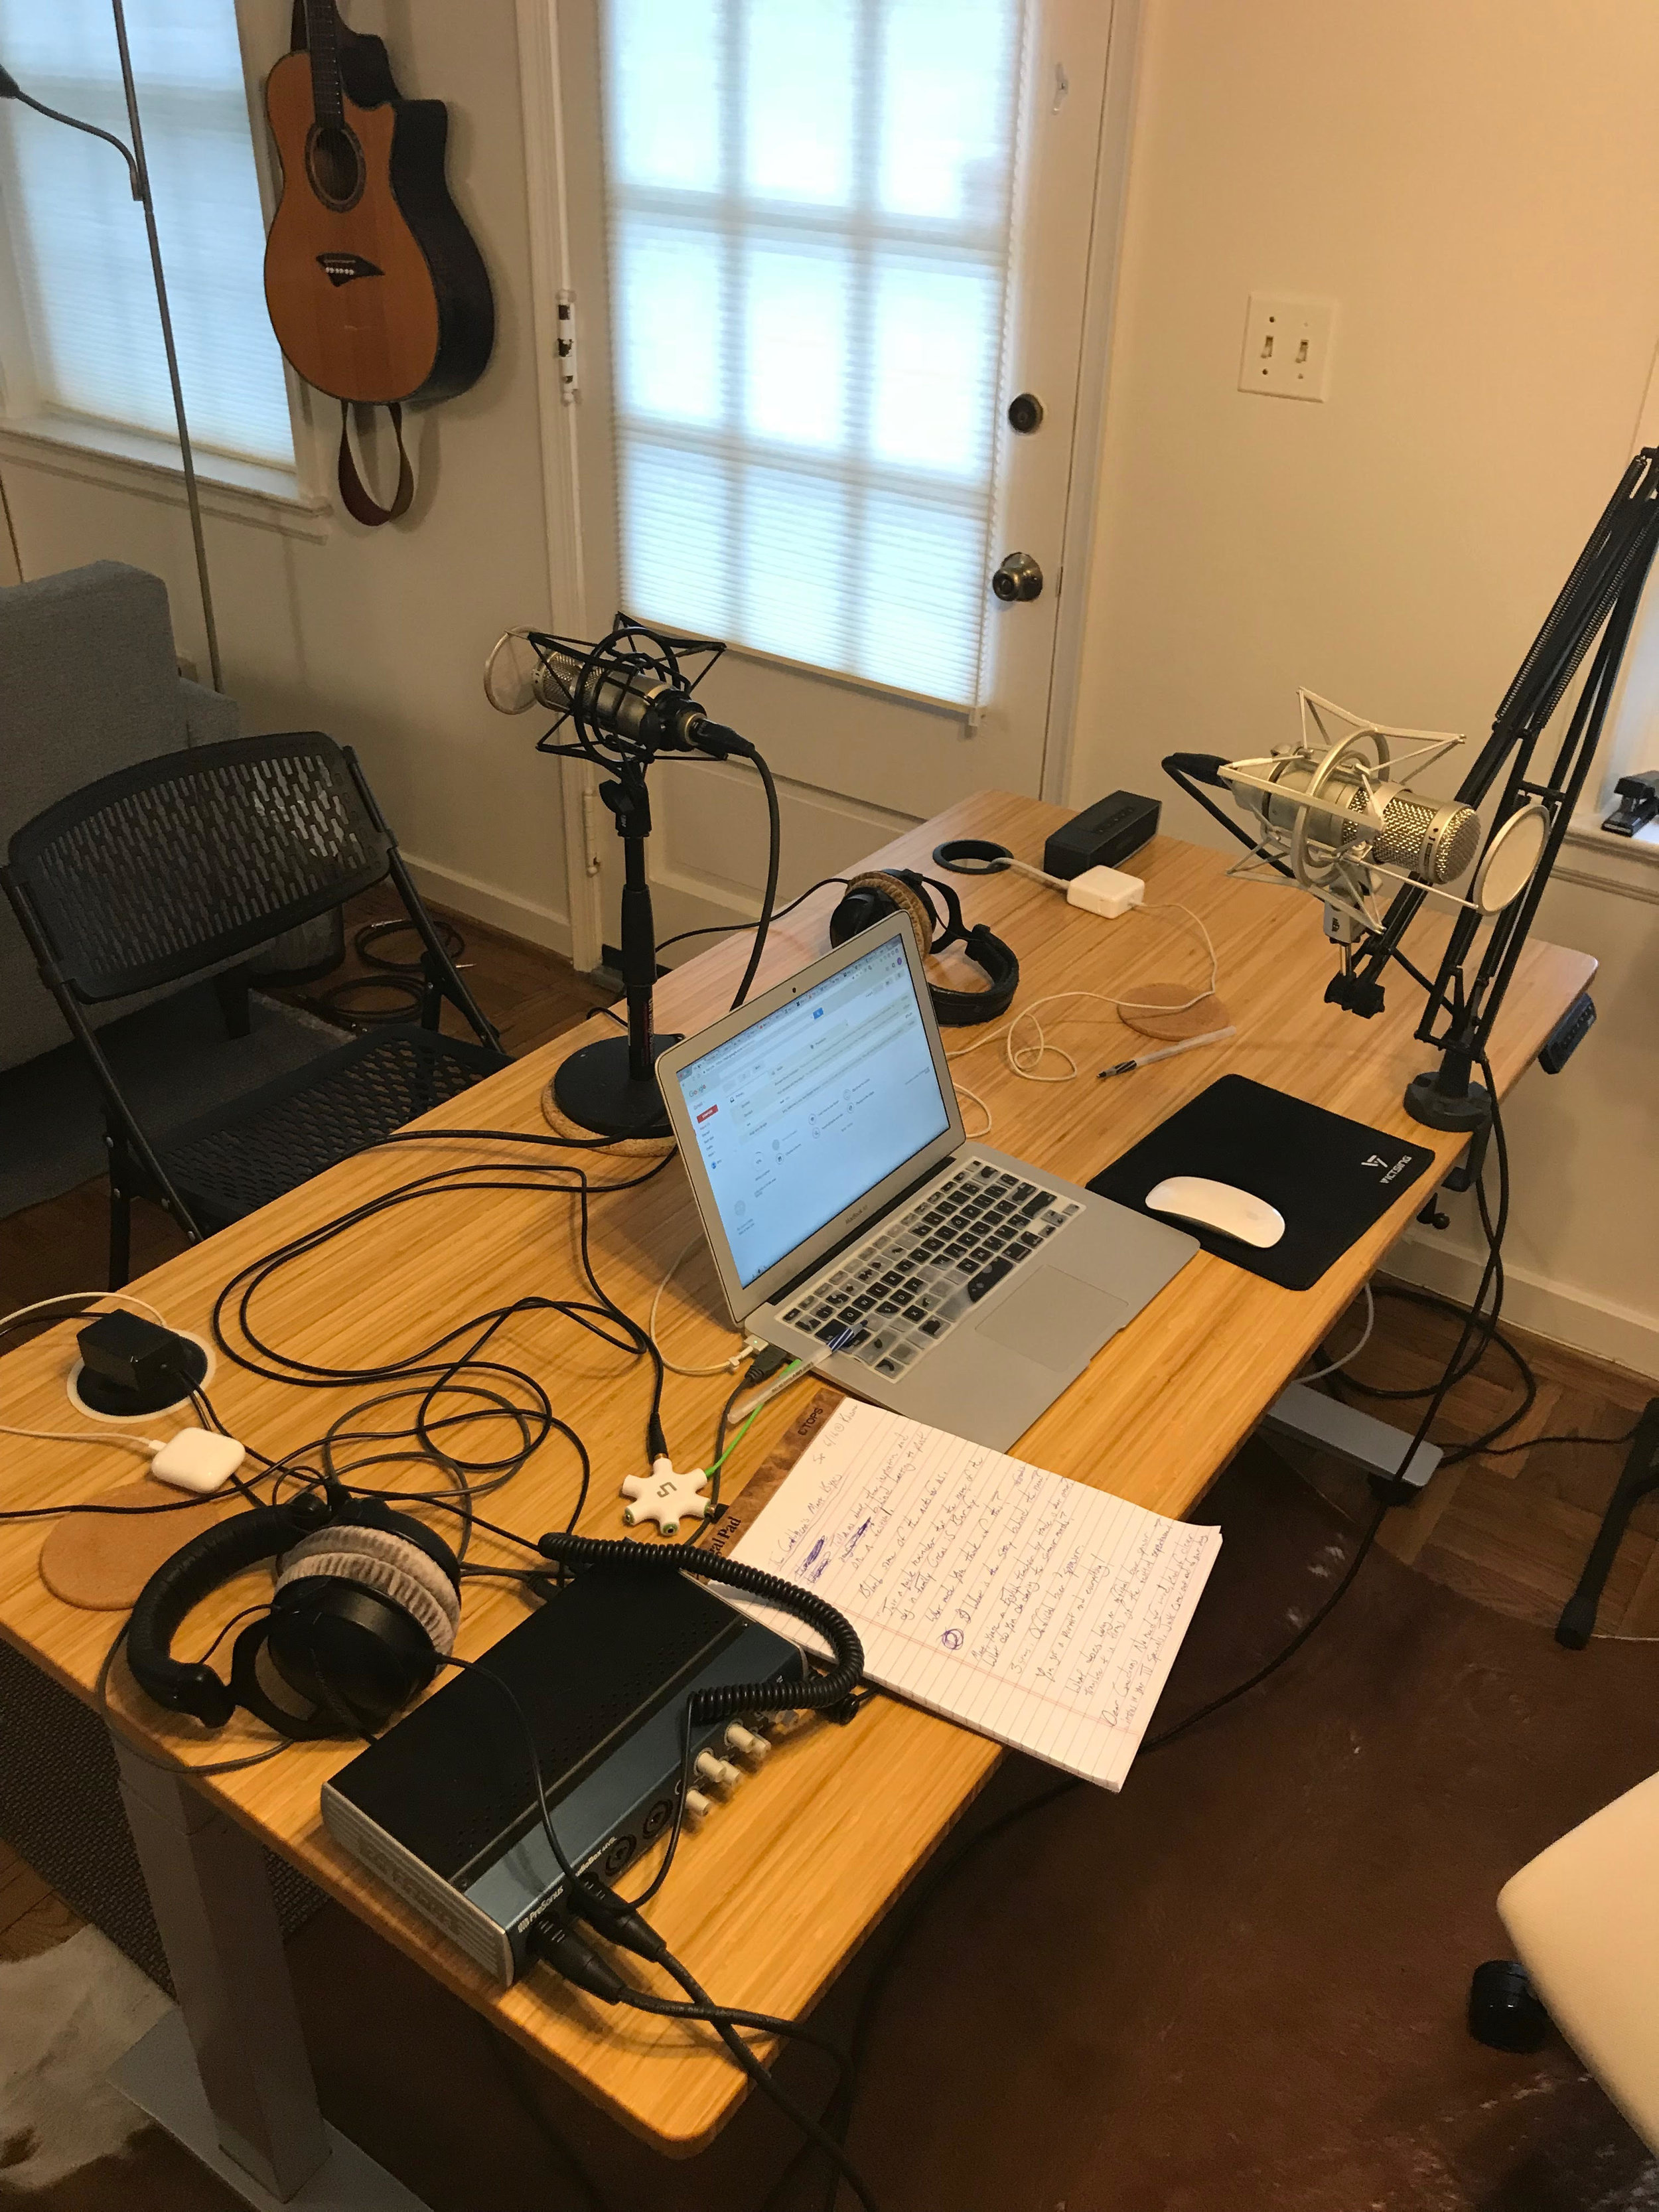 SoundGround Productions - SoundGround Productions is the creative collaborator with the technical chops and storytelling savvy to make a real human connection with your audience, because that's why people listen.